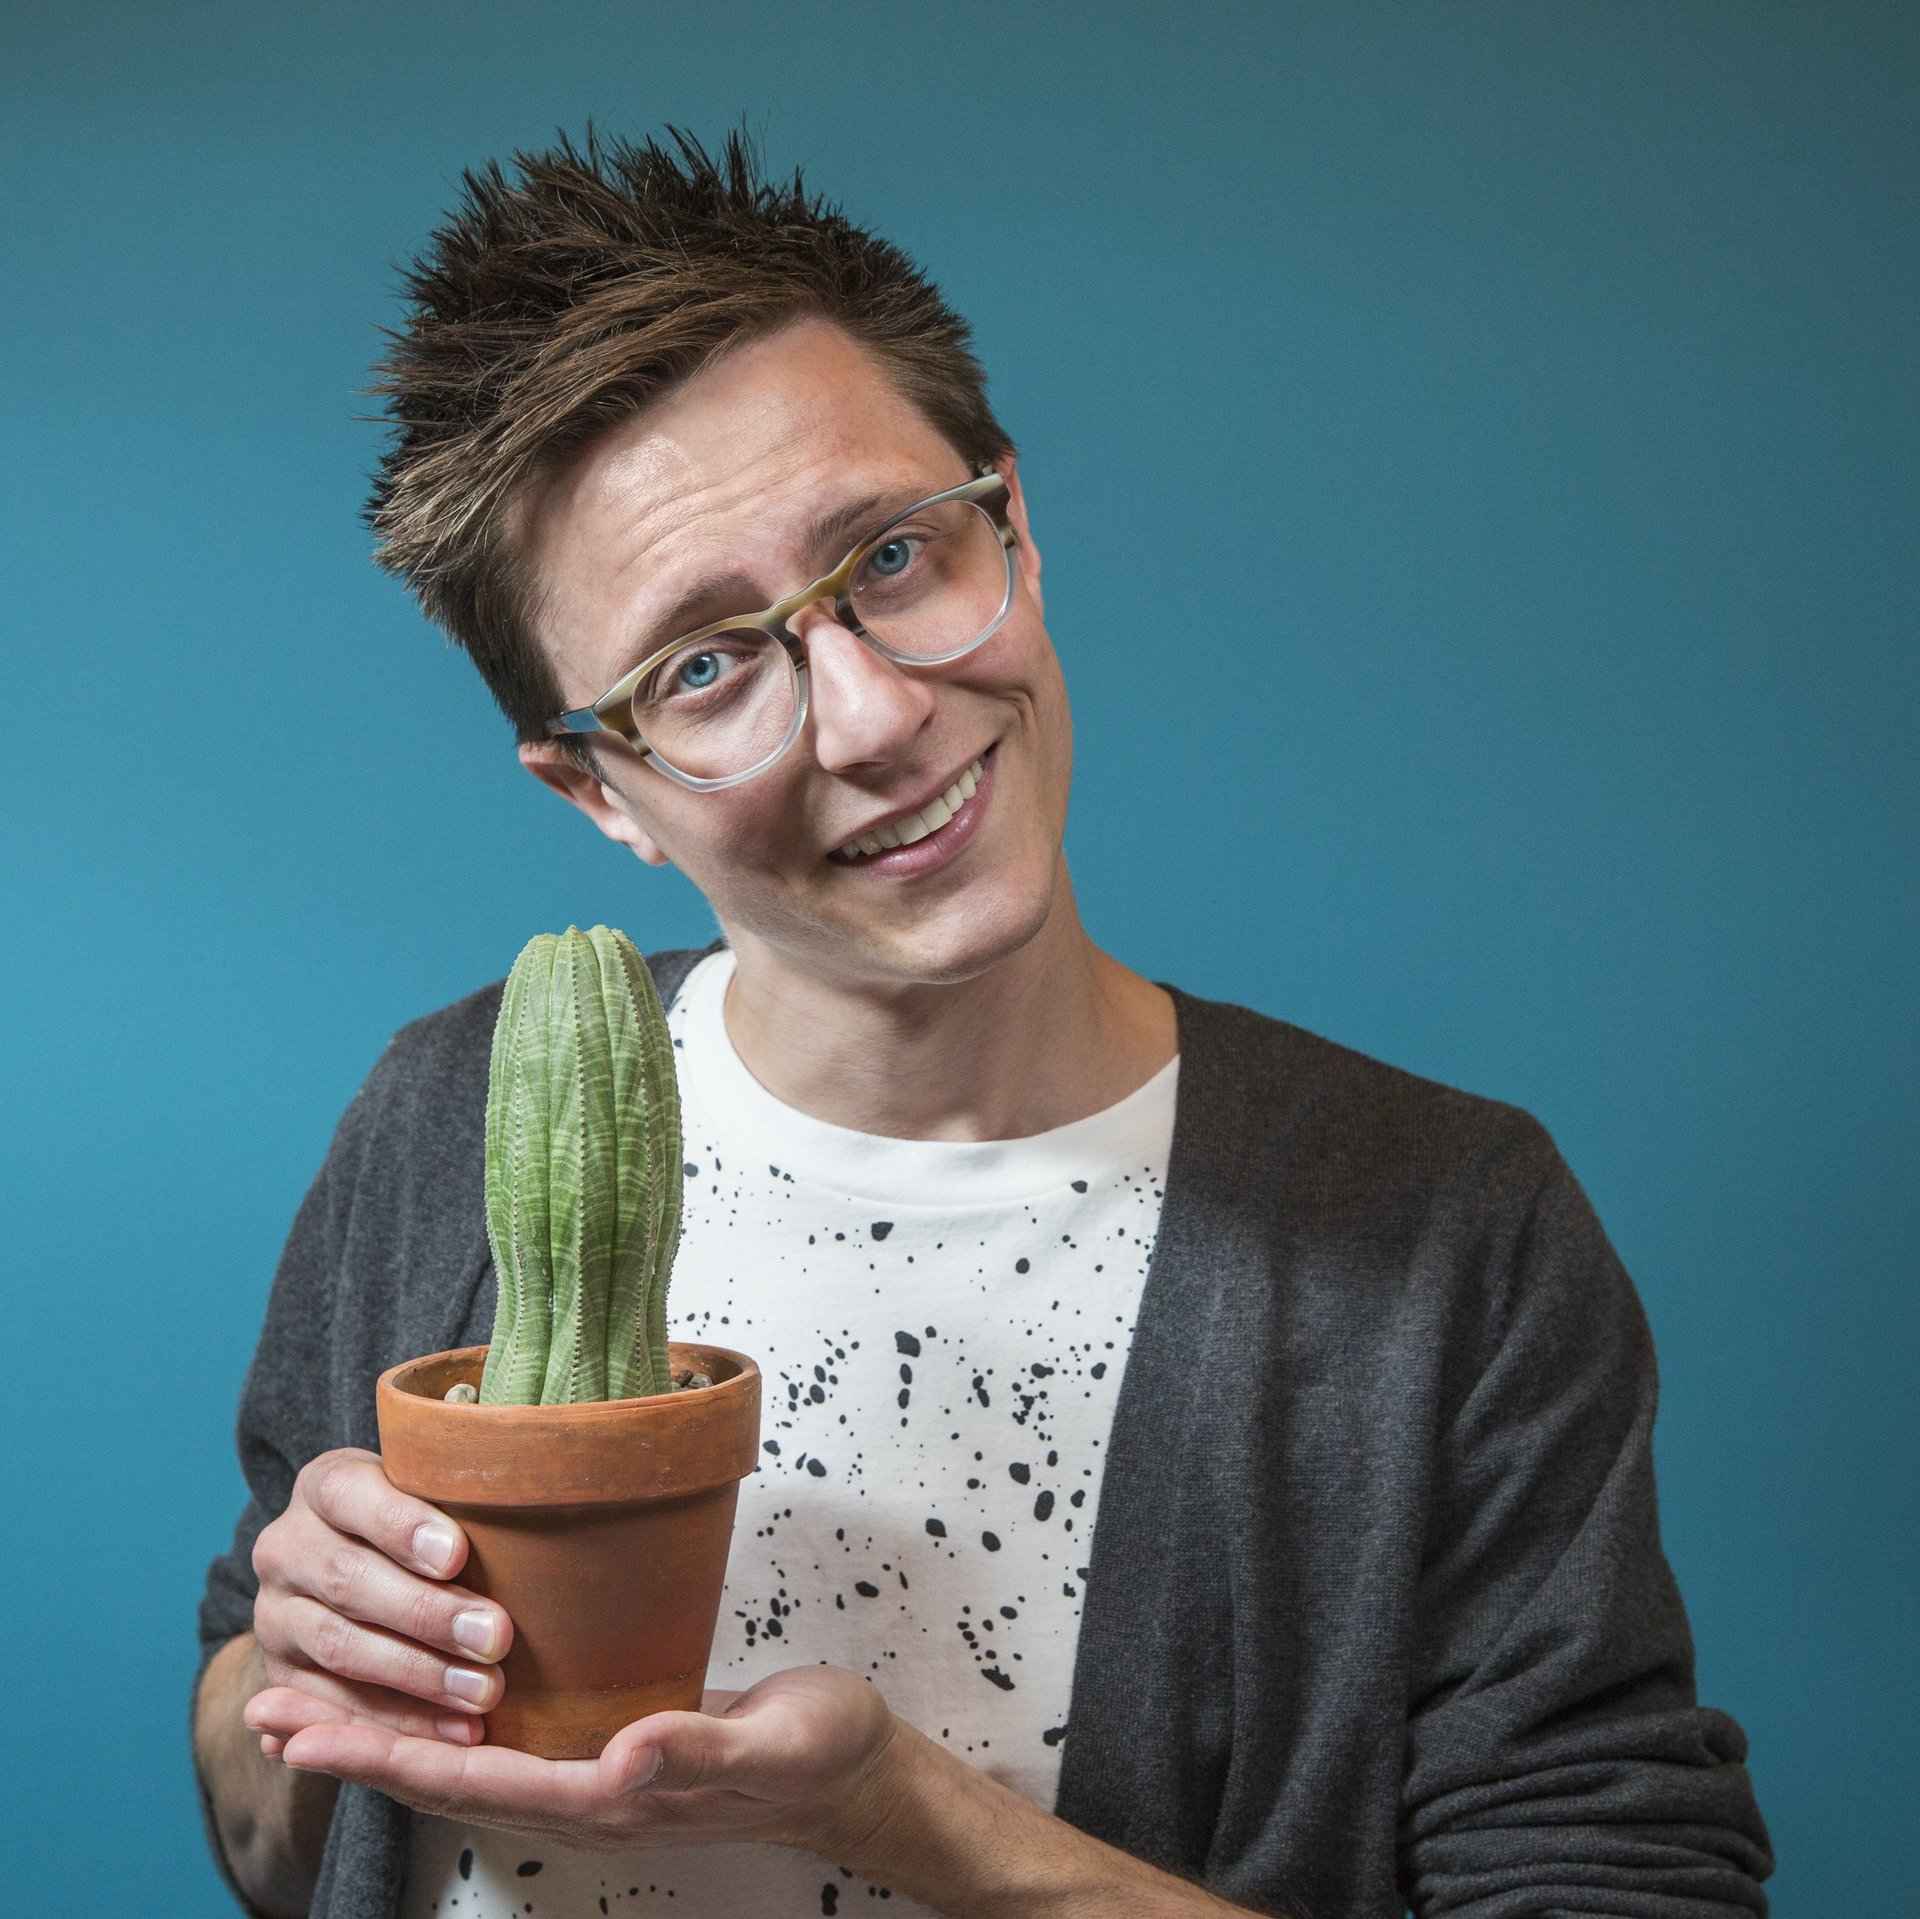 Stephen JB Thomas — design extraordinaire and amateur cactus enthusiast — posing with Frederik Reginald Pokesfield IV.